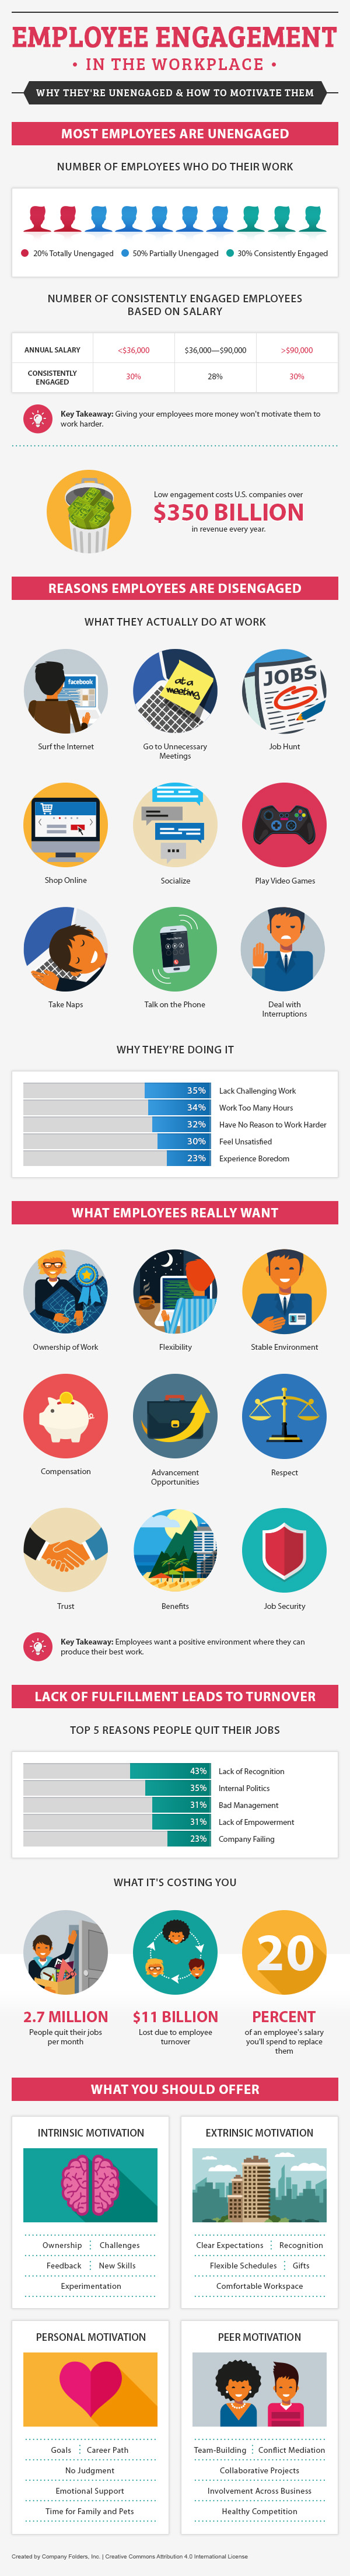 Infographic- How to measuring employee engagement at workplace and motivate them